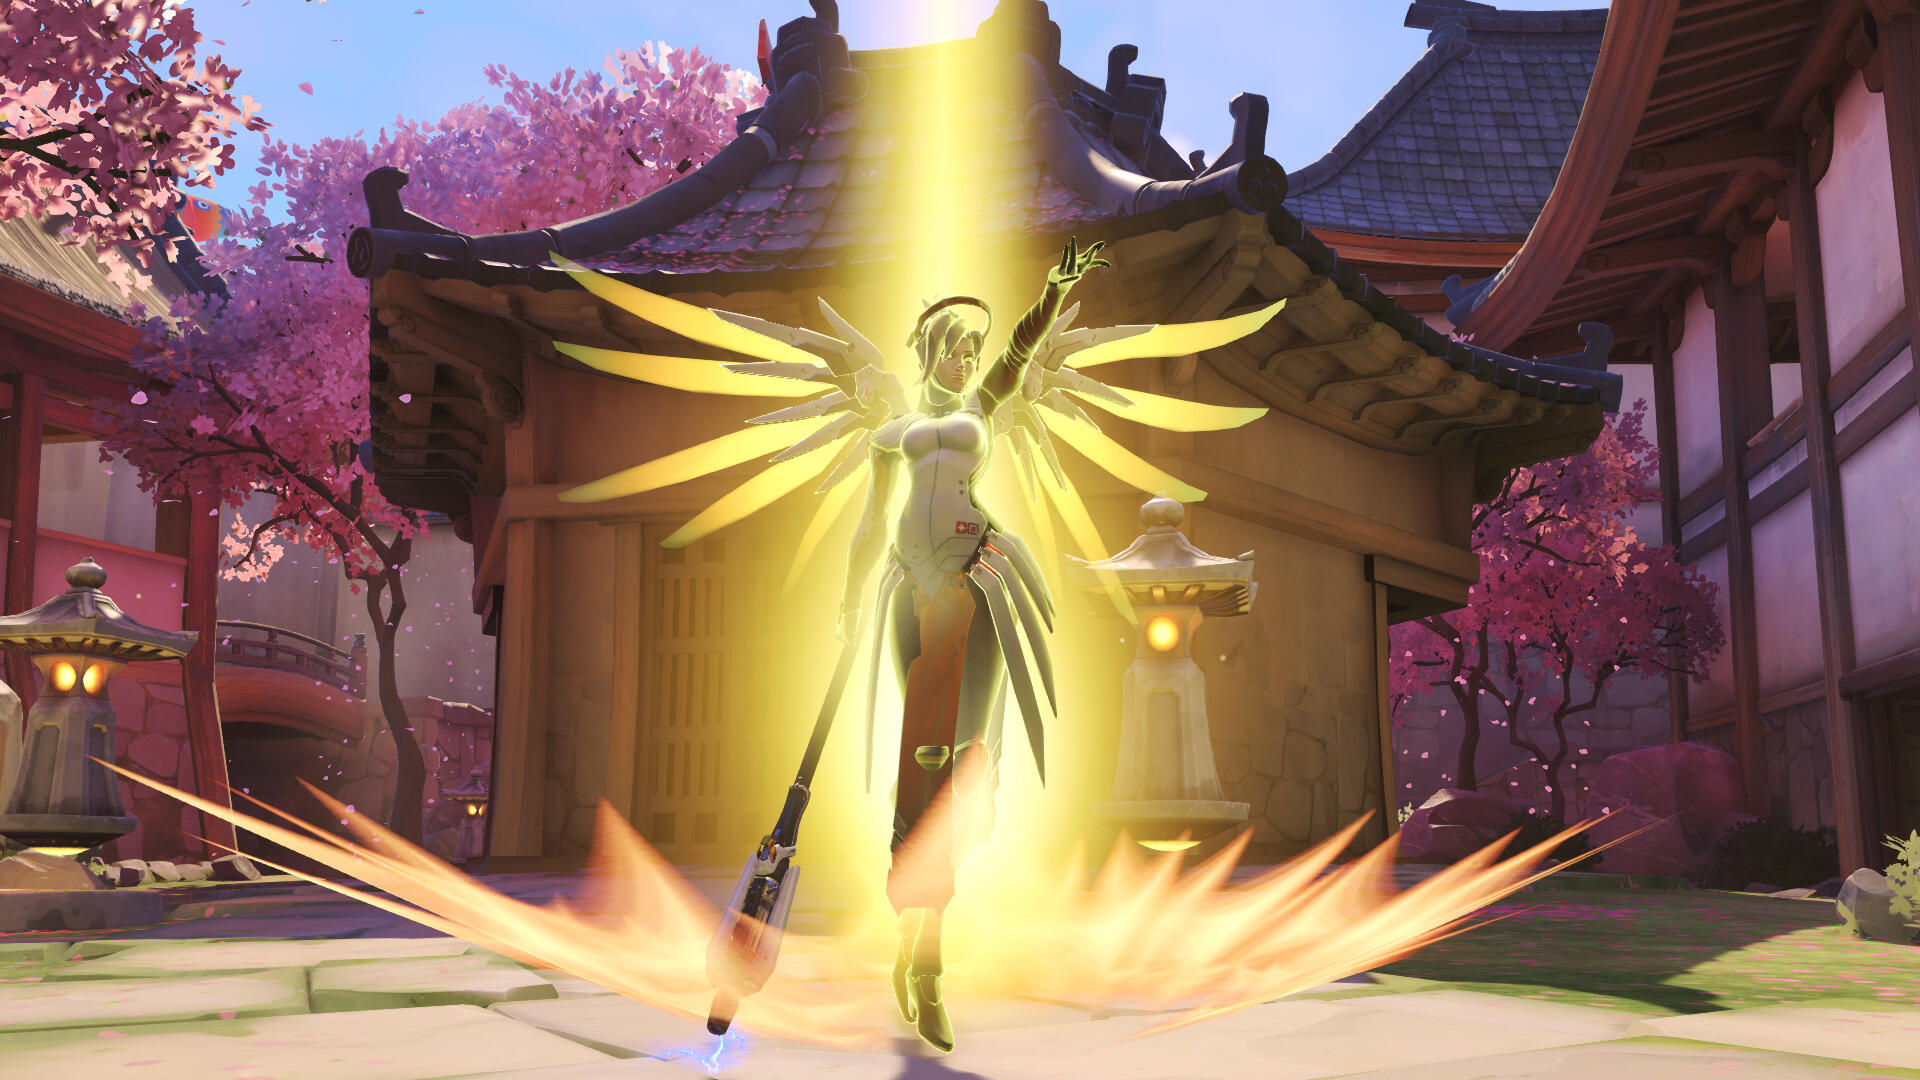 Overwatch: Observations from a Support Character